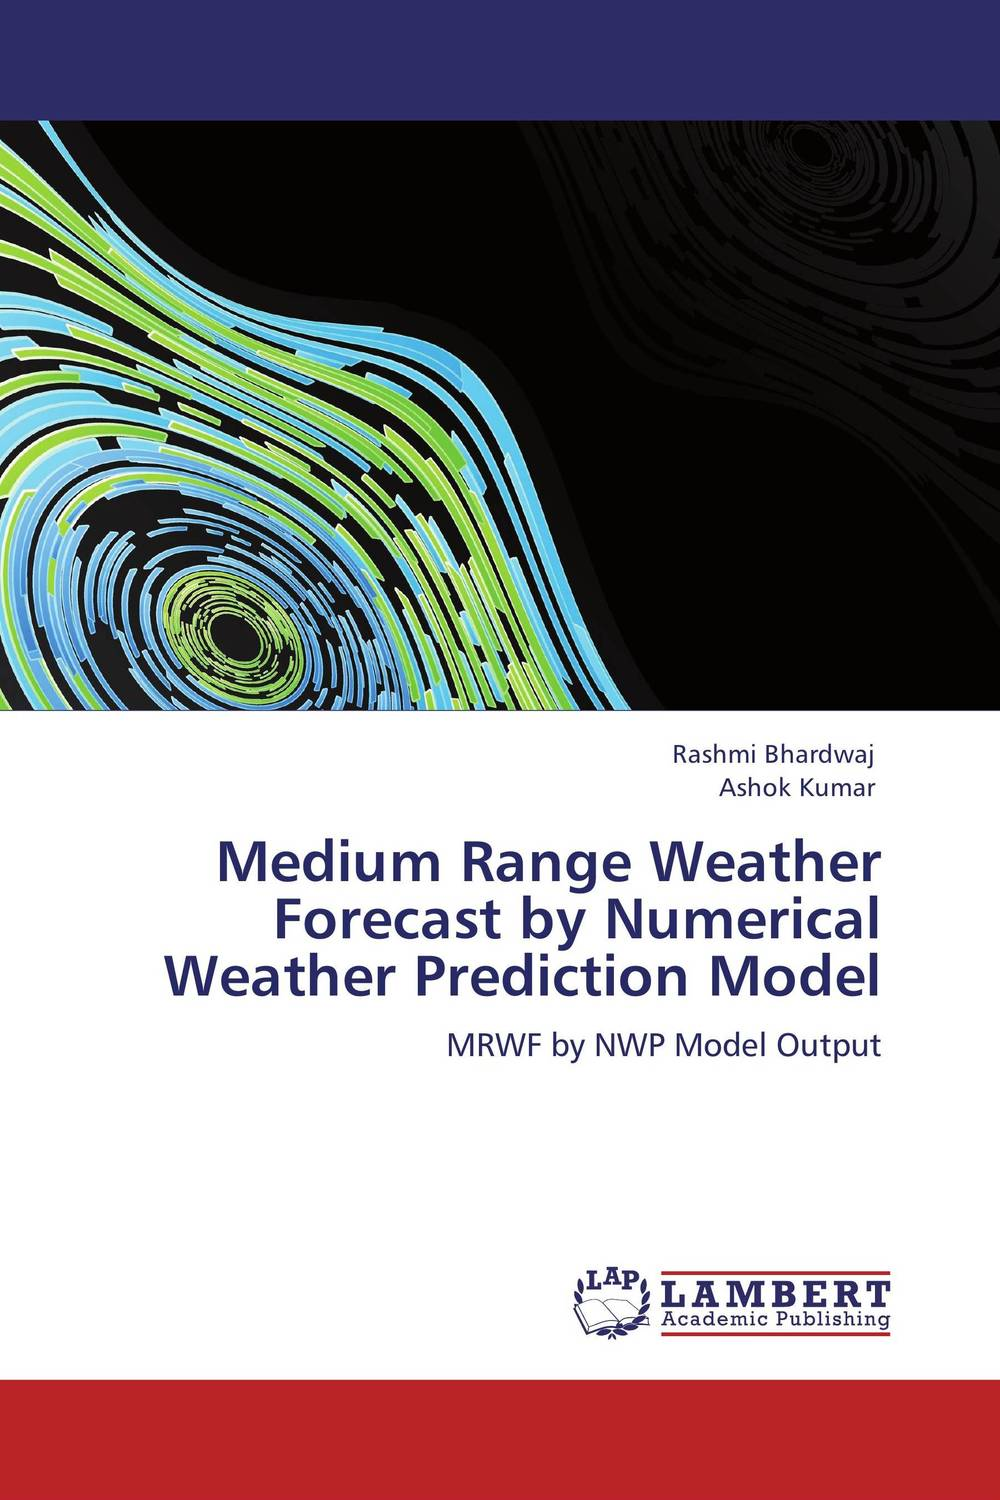 Medium Range Weather Forecast by Numerical Weather Prediction Model richard lehman far from random using investor behavior and trend analysis to forecast market movement